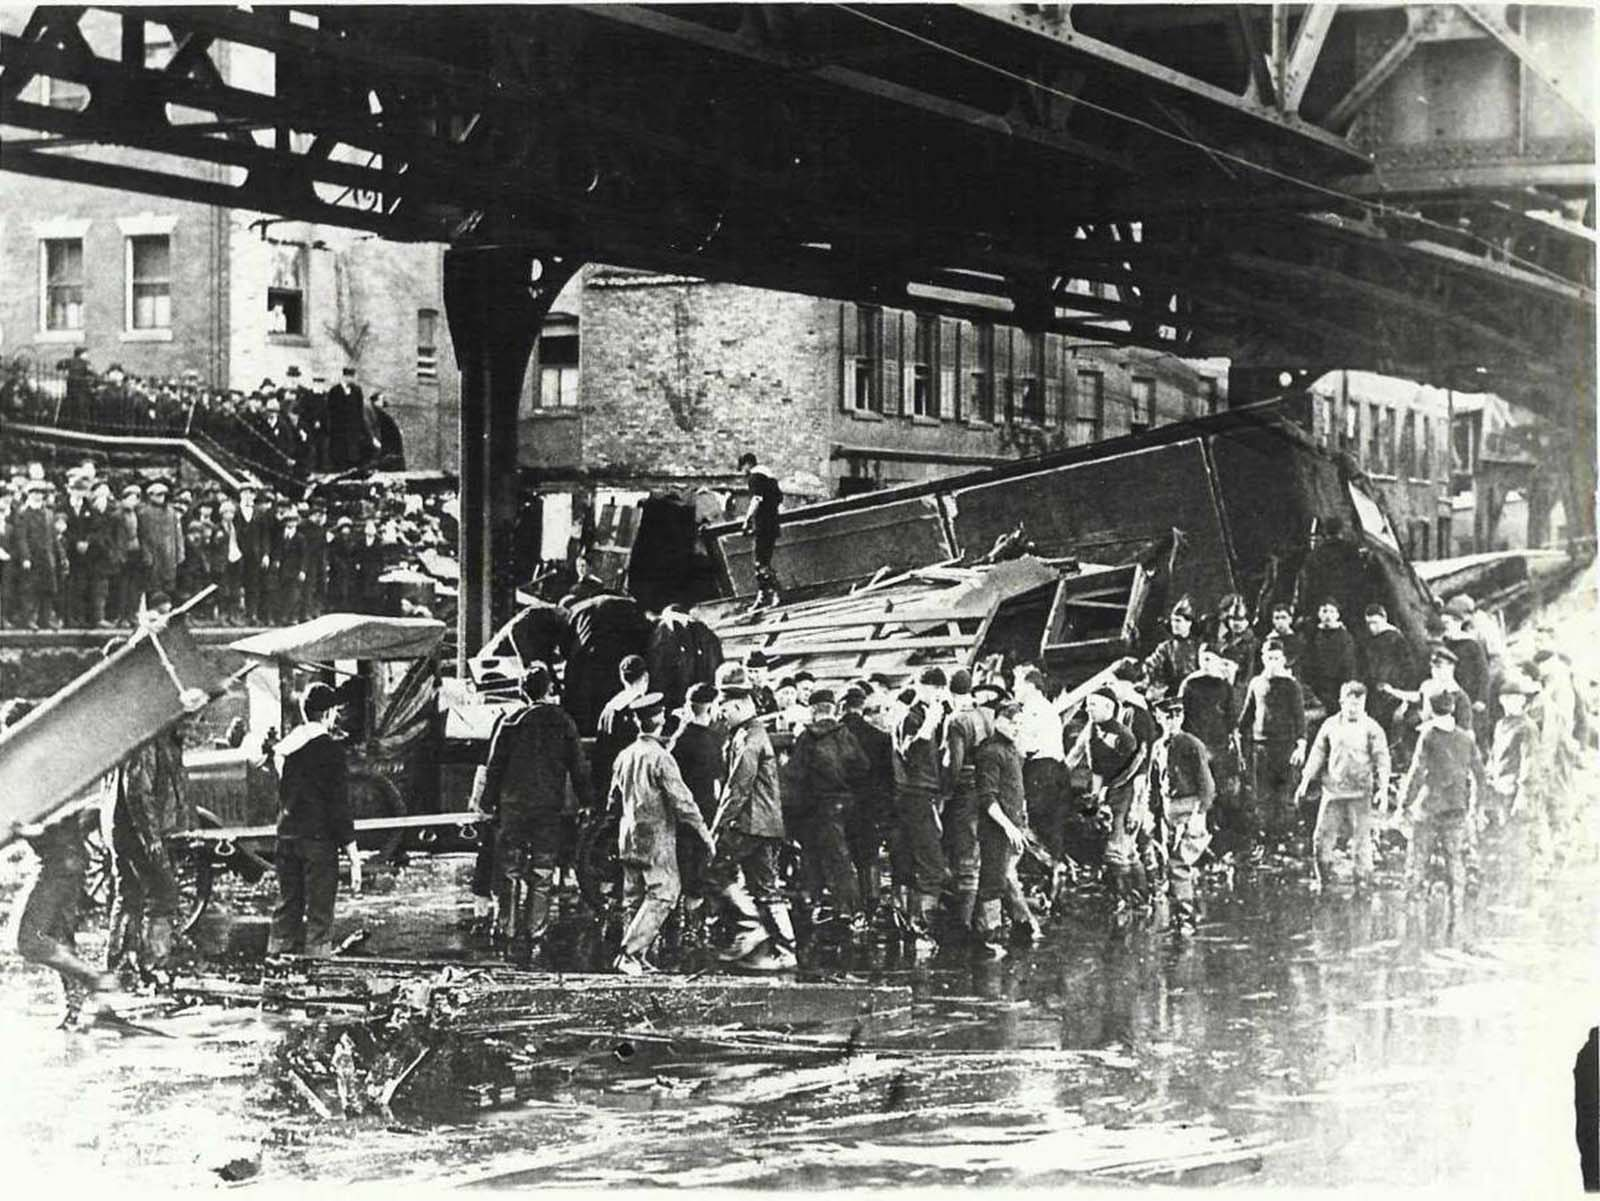 Rescuers tried desperately to save the occupants of the Clougherty house, which was torn from its foundation and smashed against the elevated train trestle by the molasses wave.